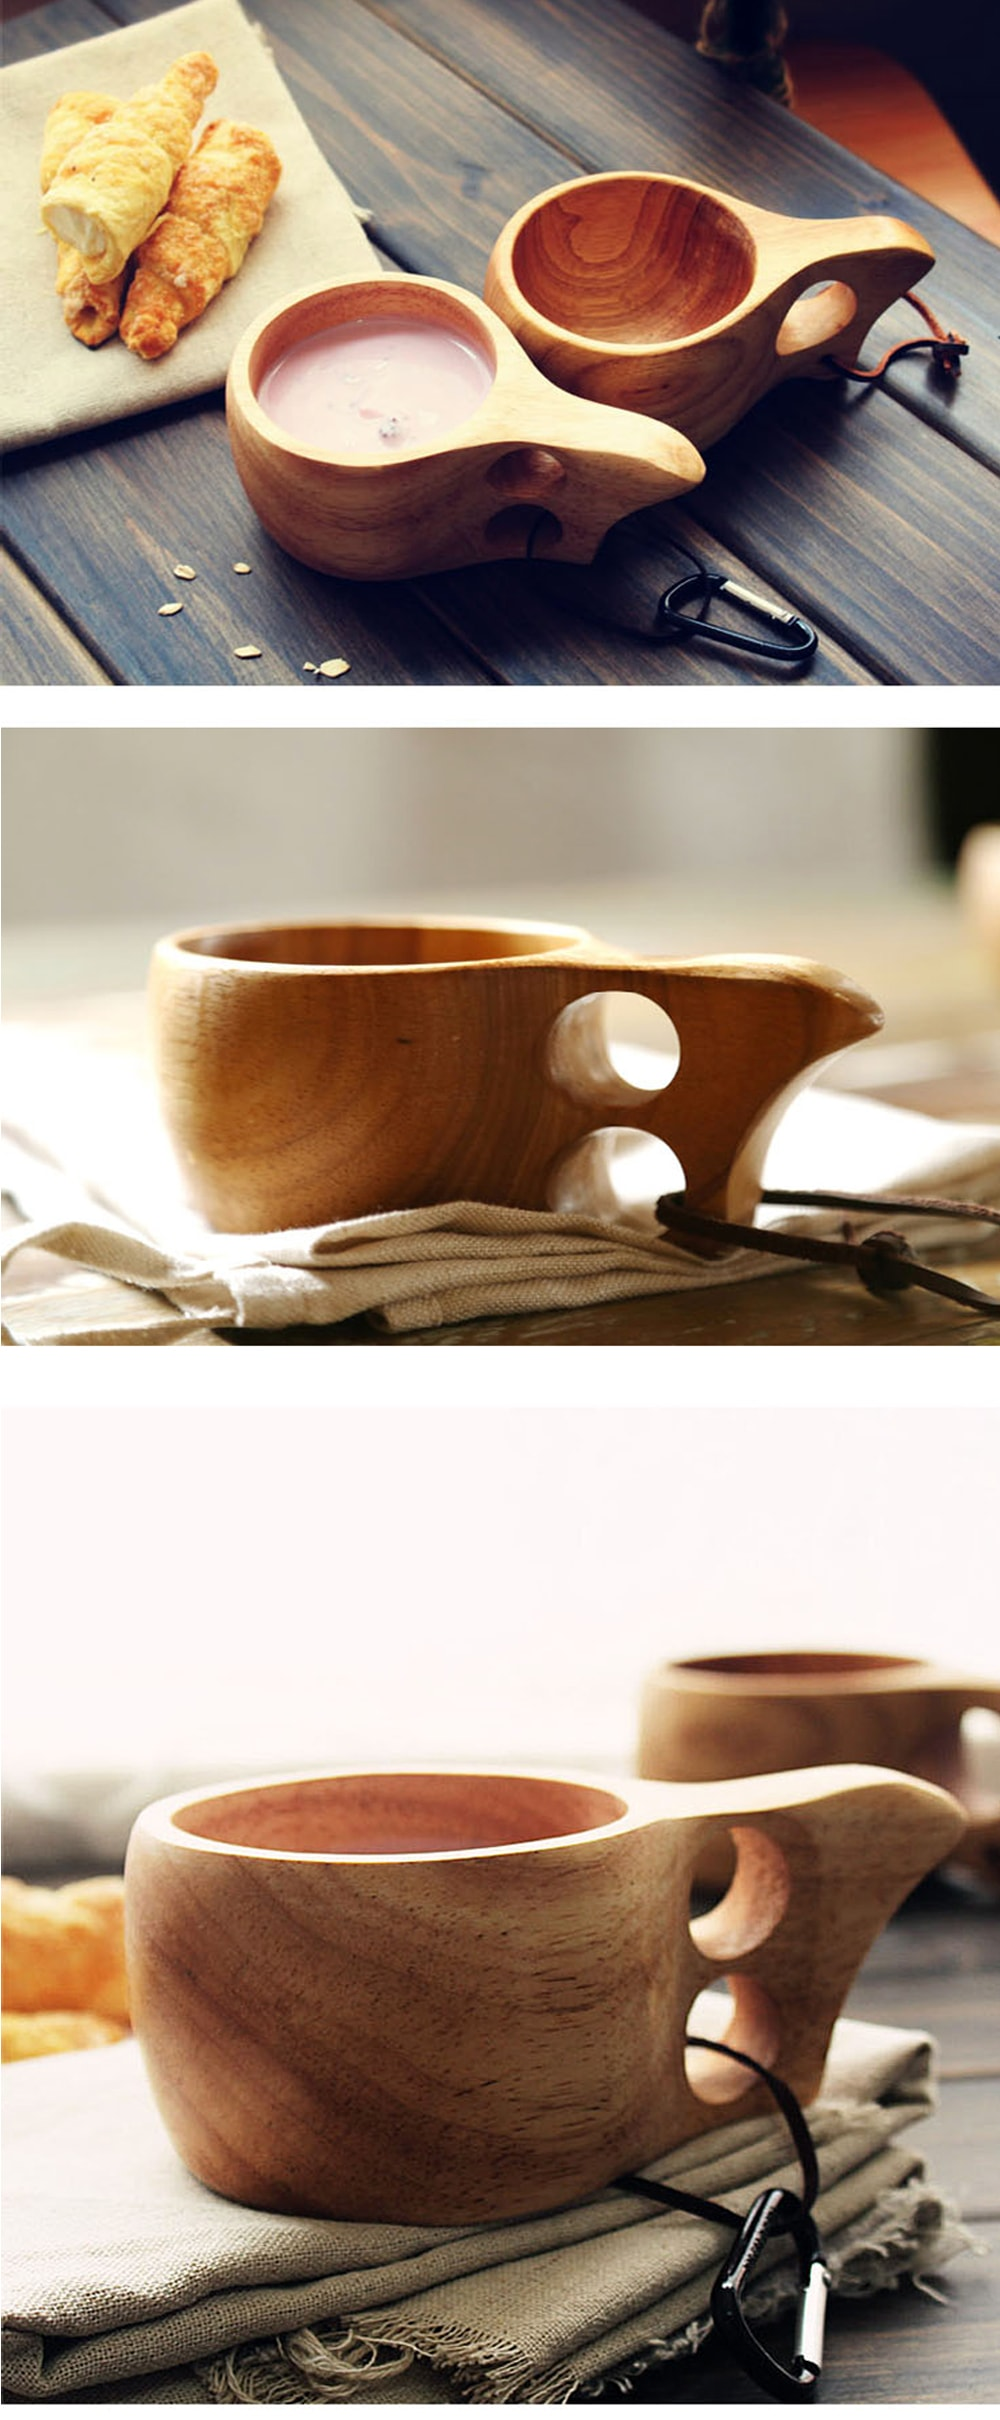 Wooden Coffee Mug 100% Natural Wood Material